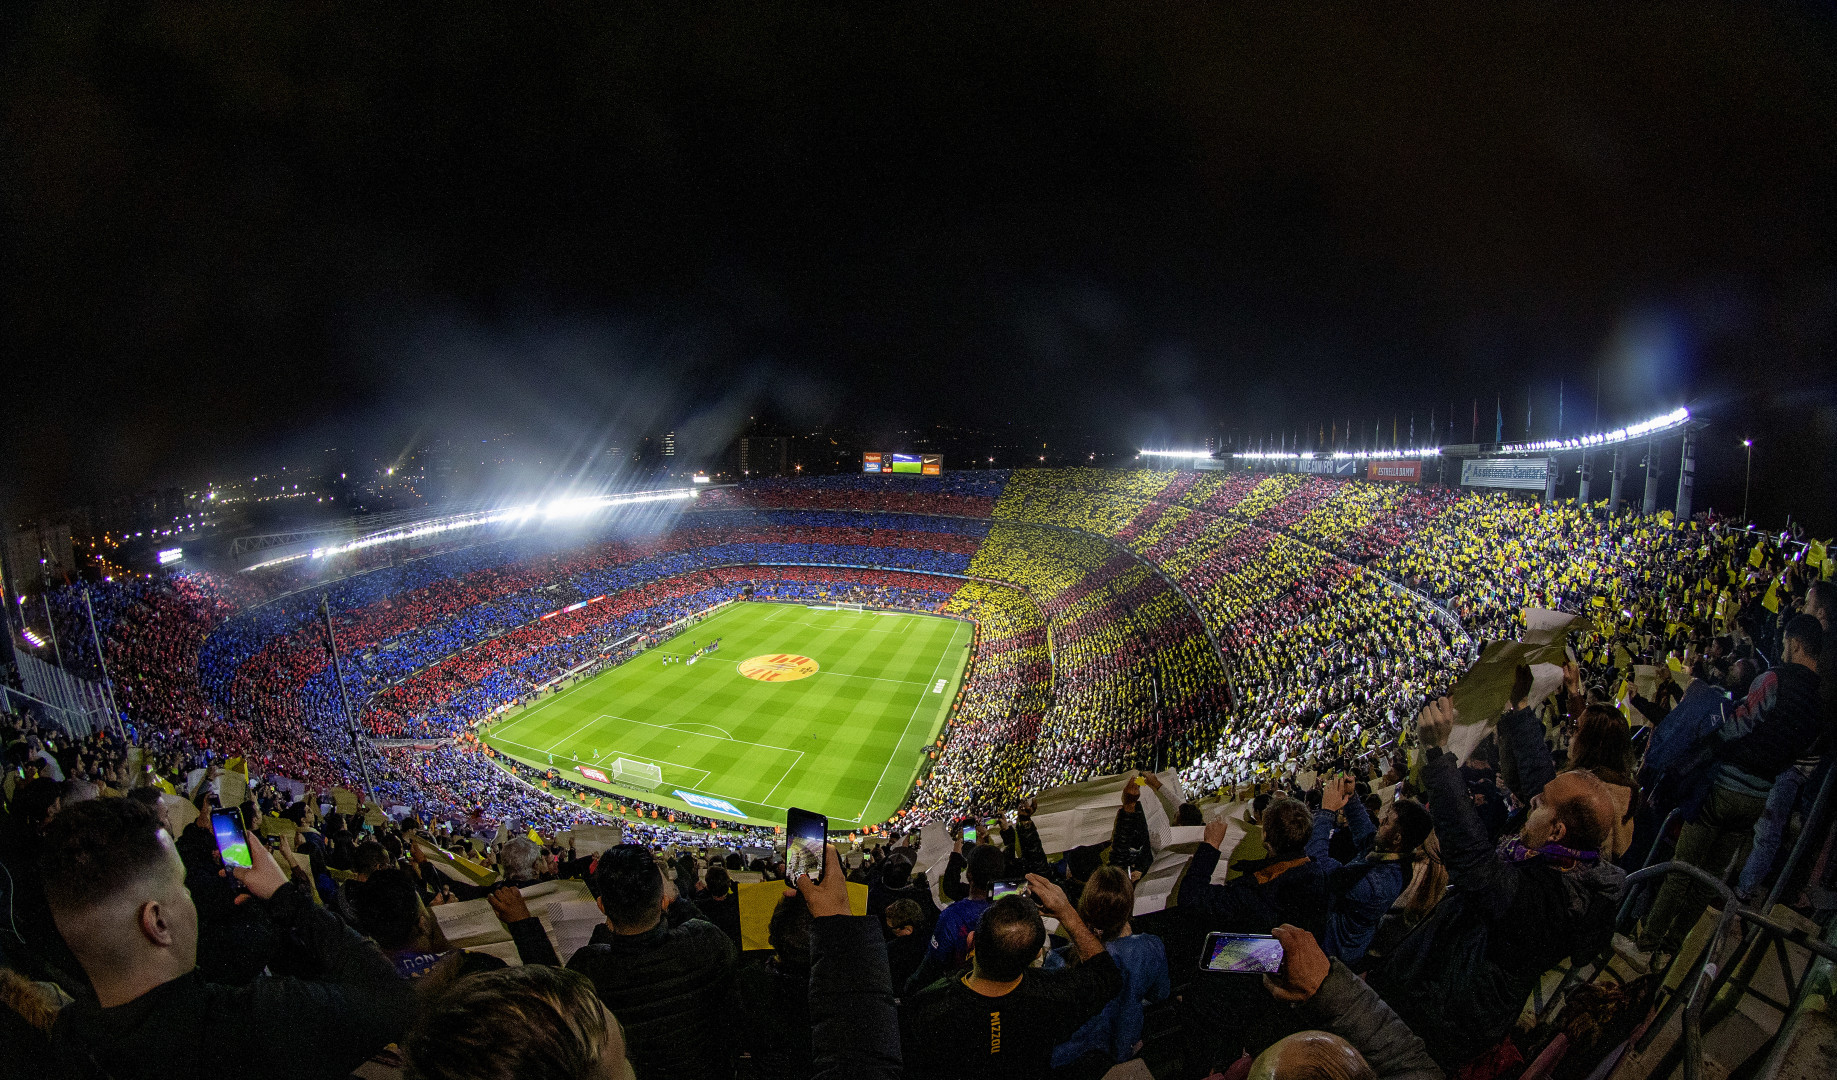 A spectacular panoramic view of Nou Camp Stadium as fans hold coloured placards before the start of the Barcelona V Real Madrid, La Liga regular season match at Estadio Camp Nou on December 18th 2019 (optimized)